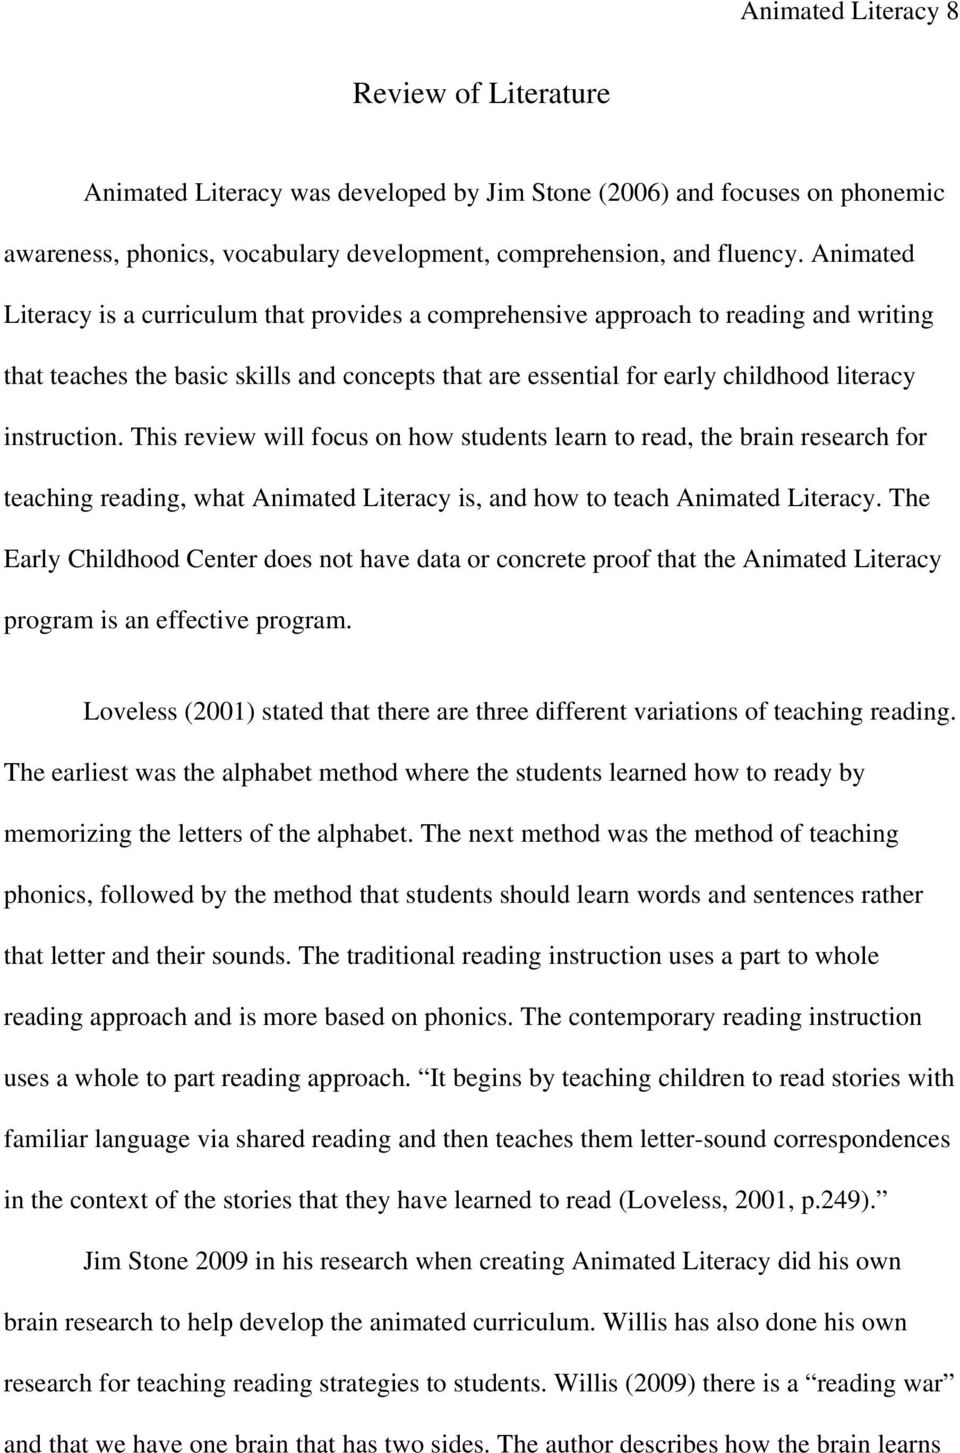 This review will focus on how students learn to read, the brain research for teaching reading, what Animated Literacy is, and how to teach Animated Literacy.